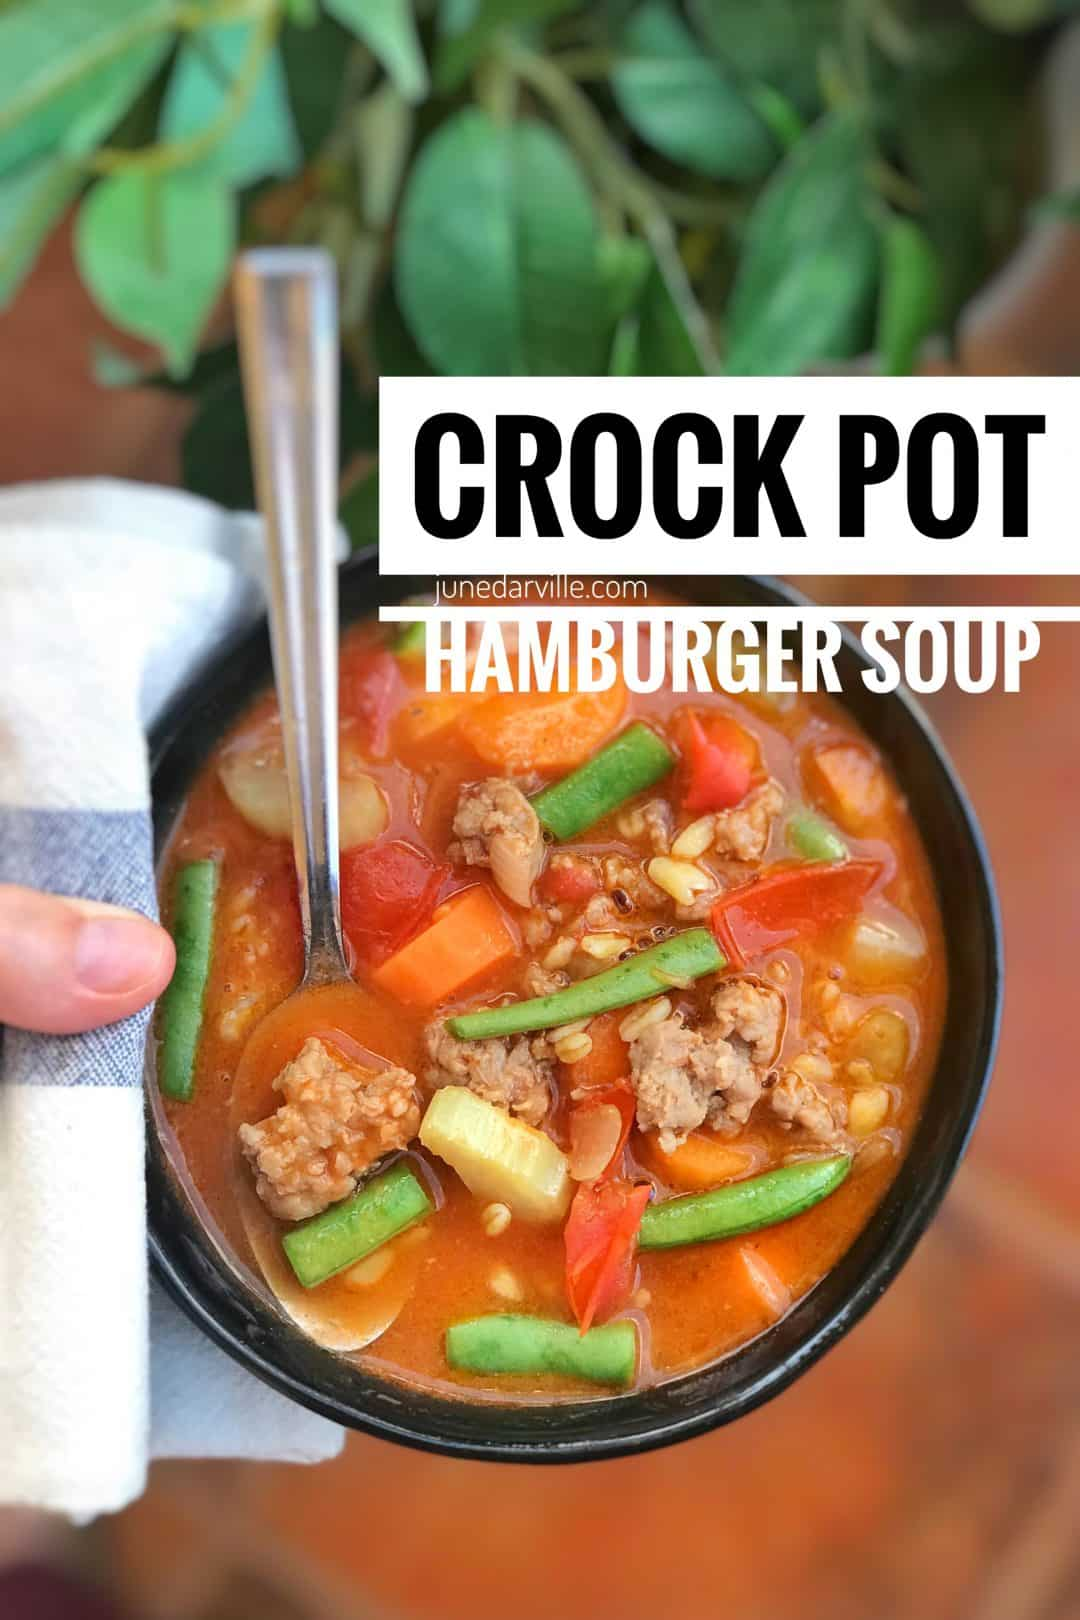 A hearty and chunky hamburger soup with beef mince, canned tomatoes, fresh vegetables and wheat berries... What a delicious wholesome meal!